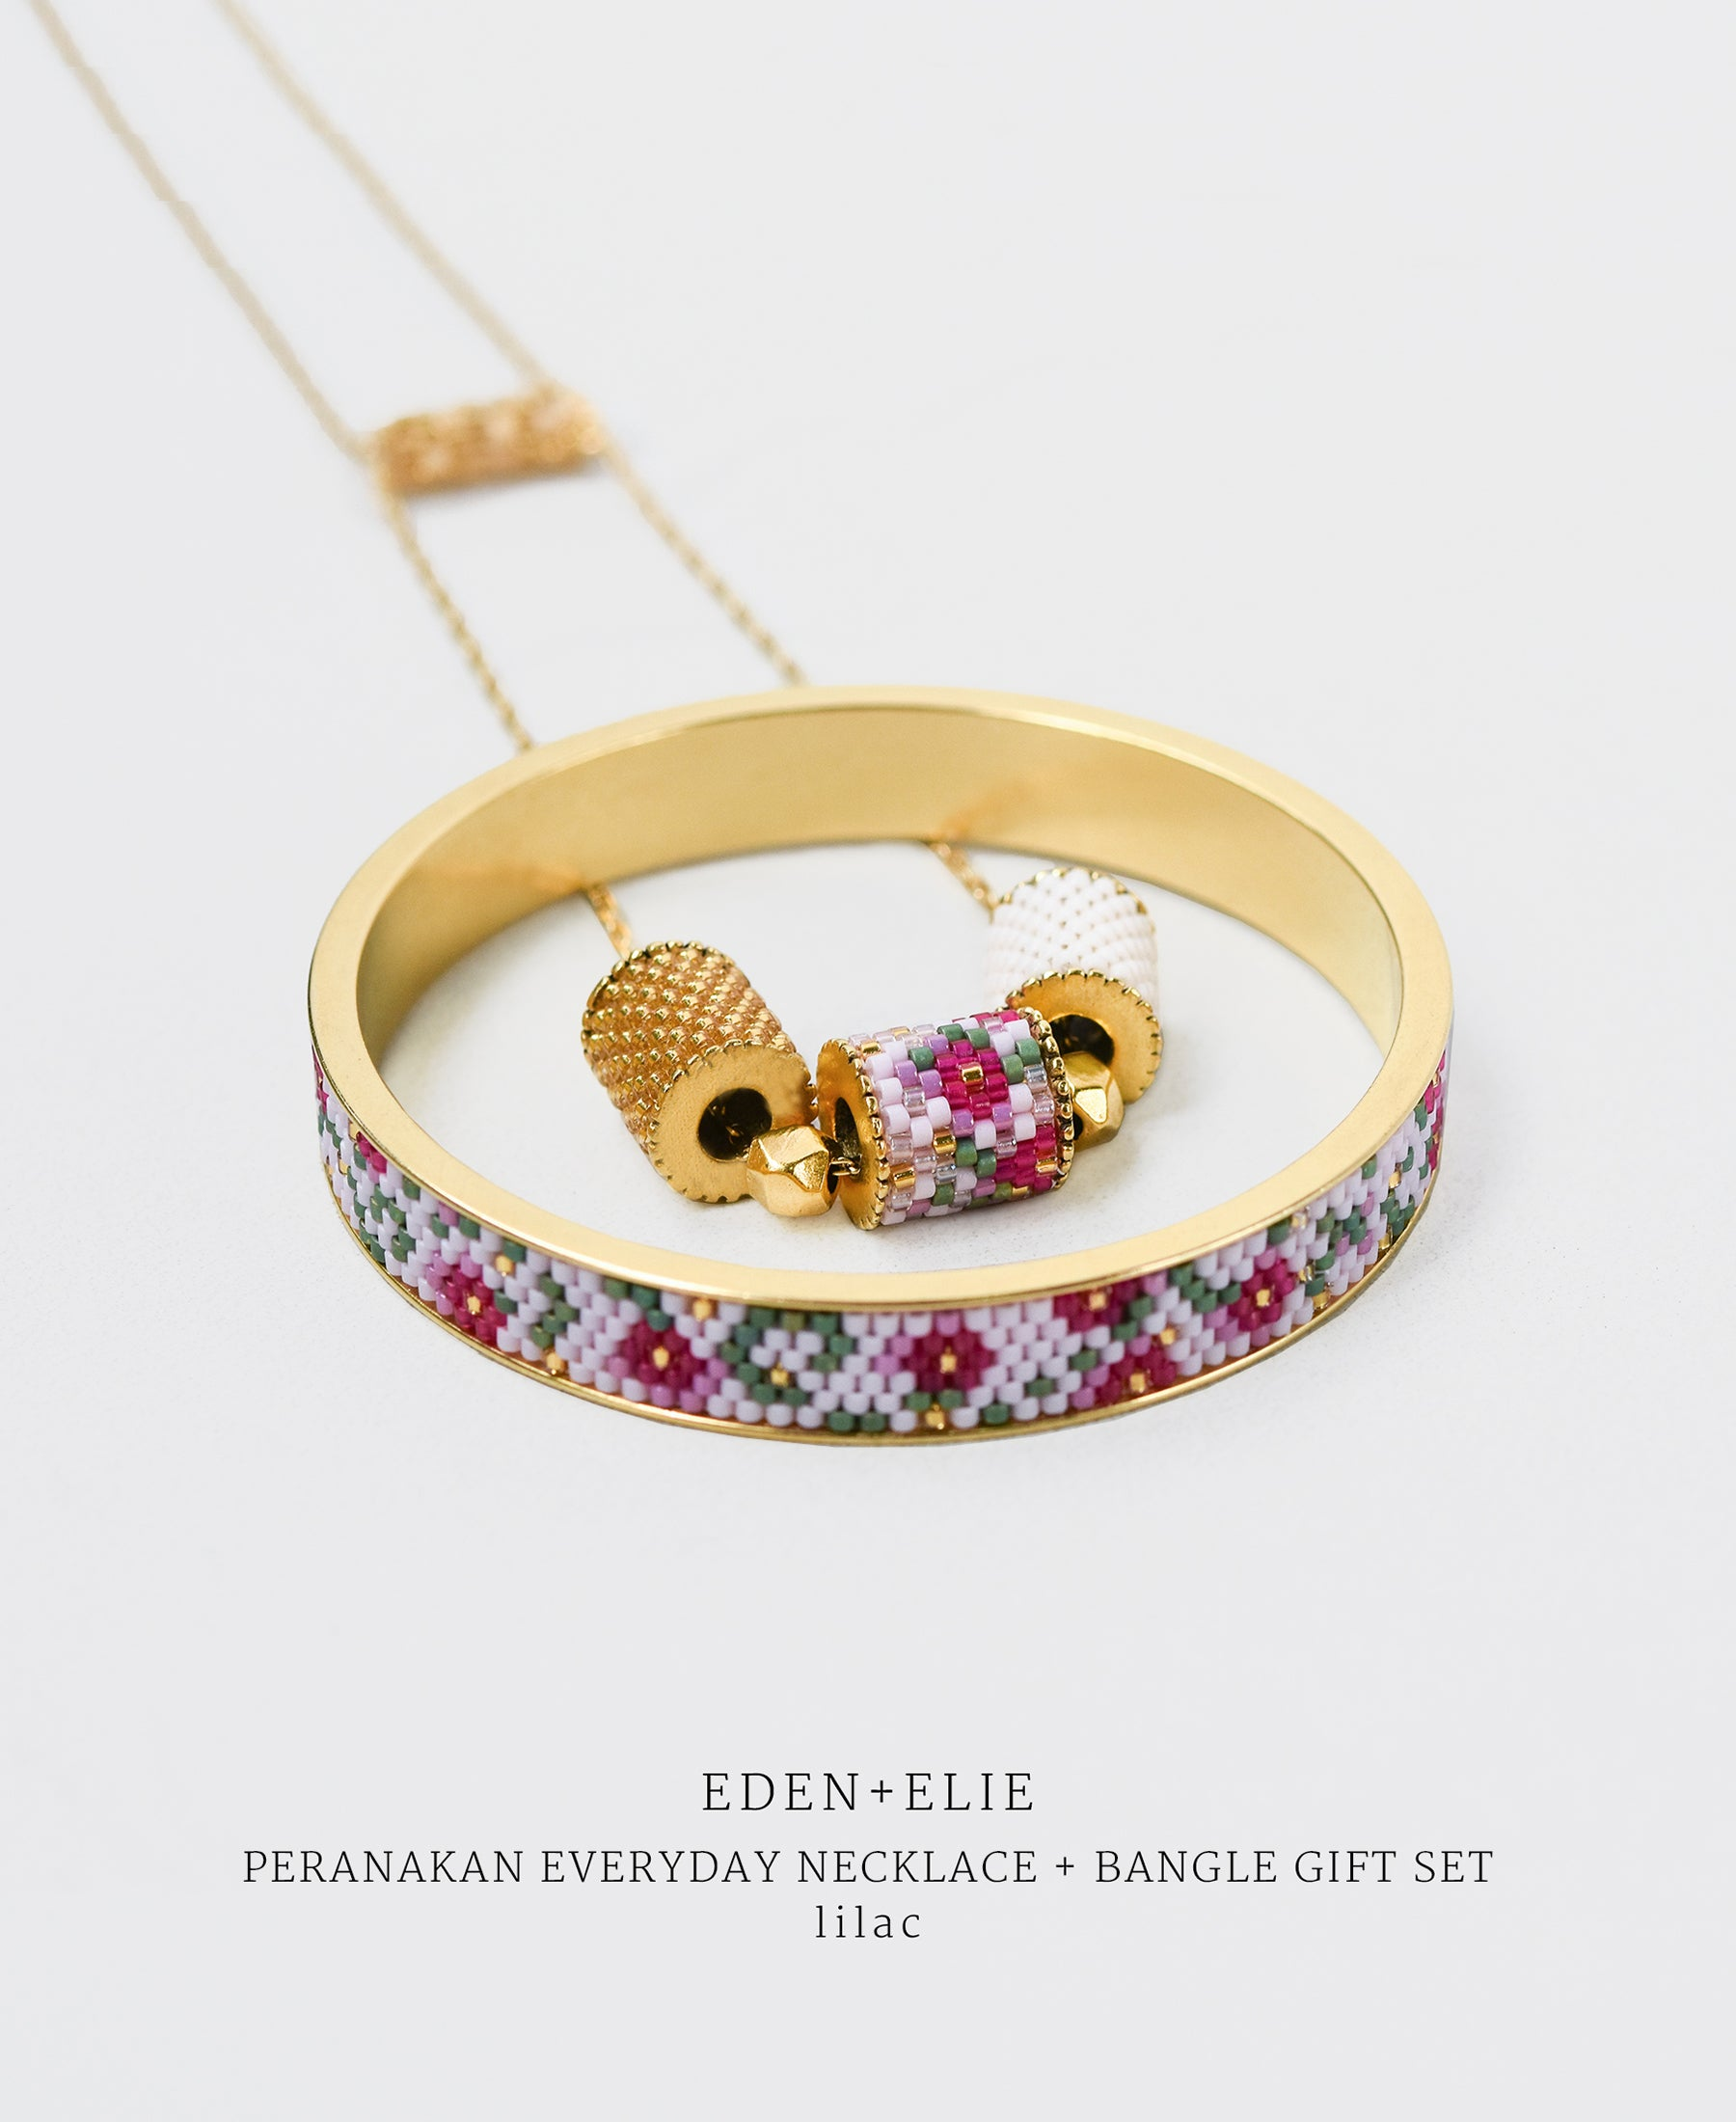 EDEN + ELIE Modern Peranakan adjustable length necklace + bangle gift set - lilac